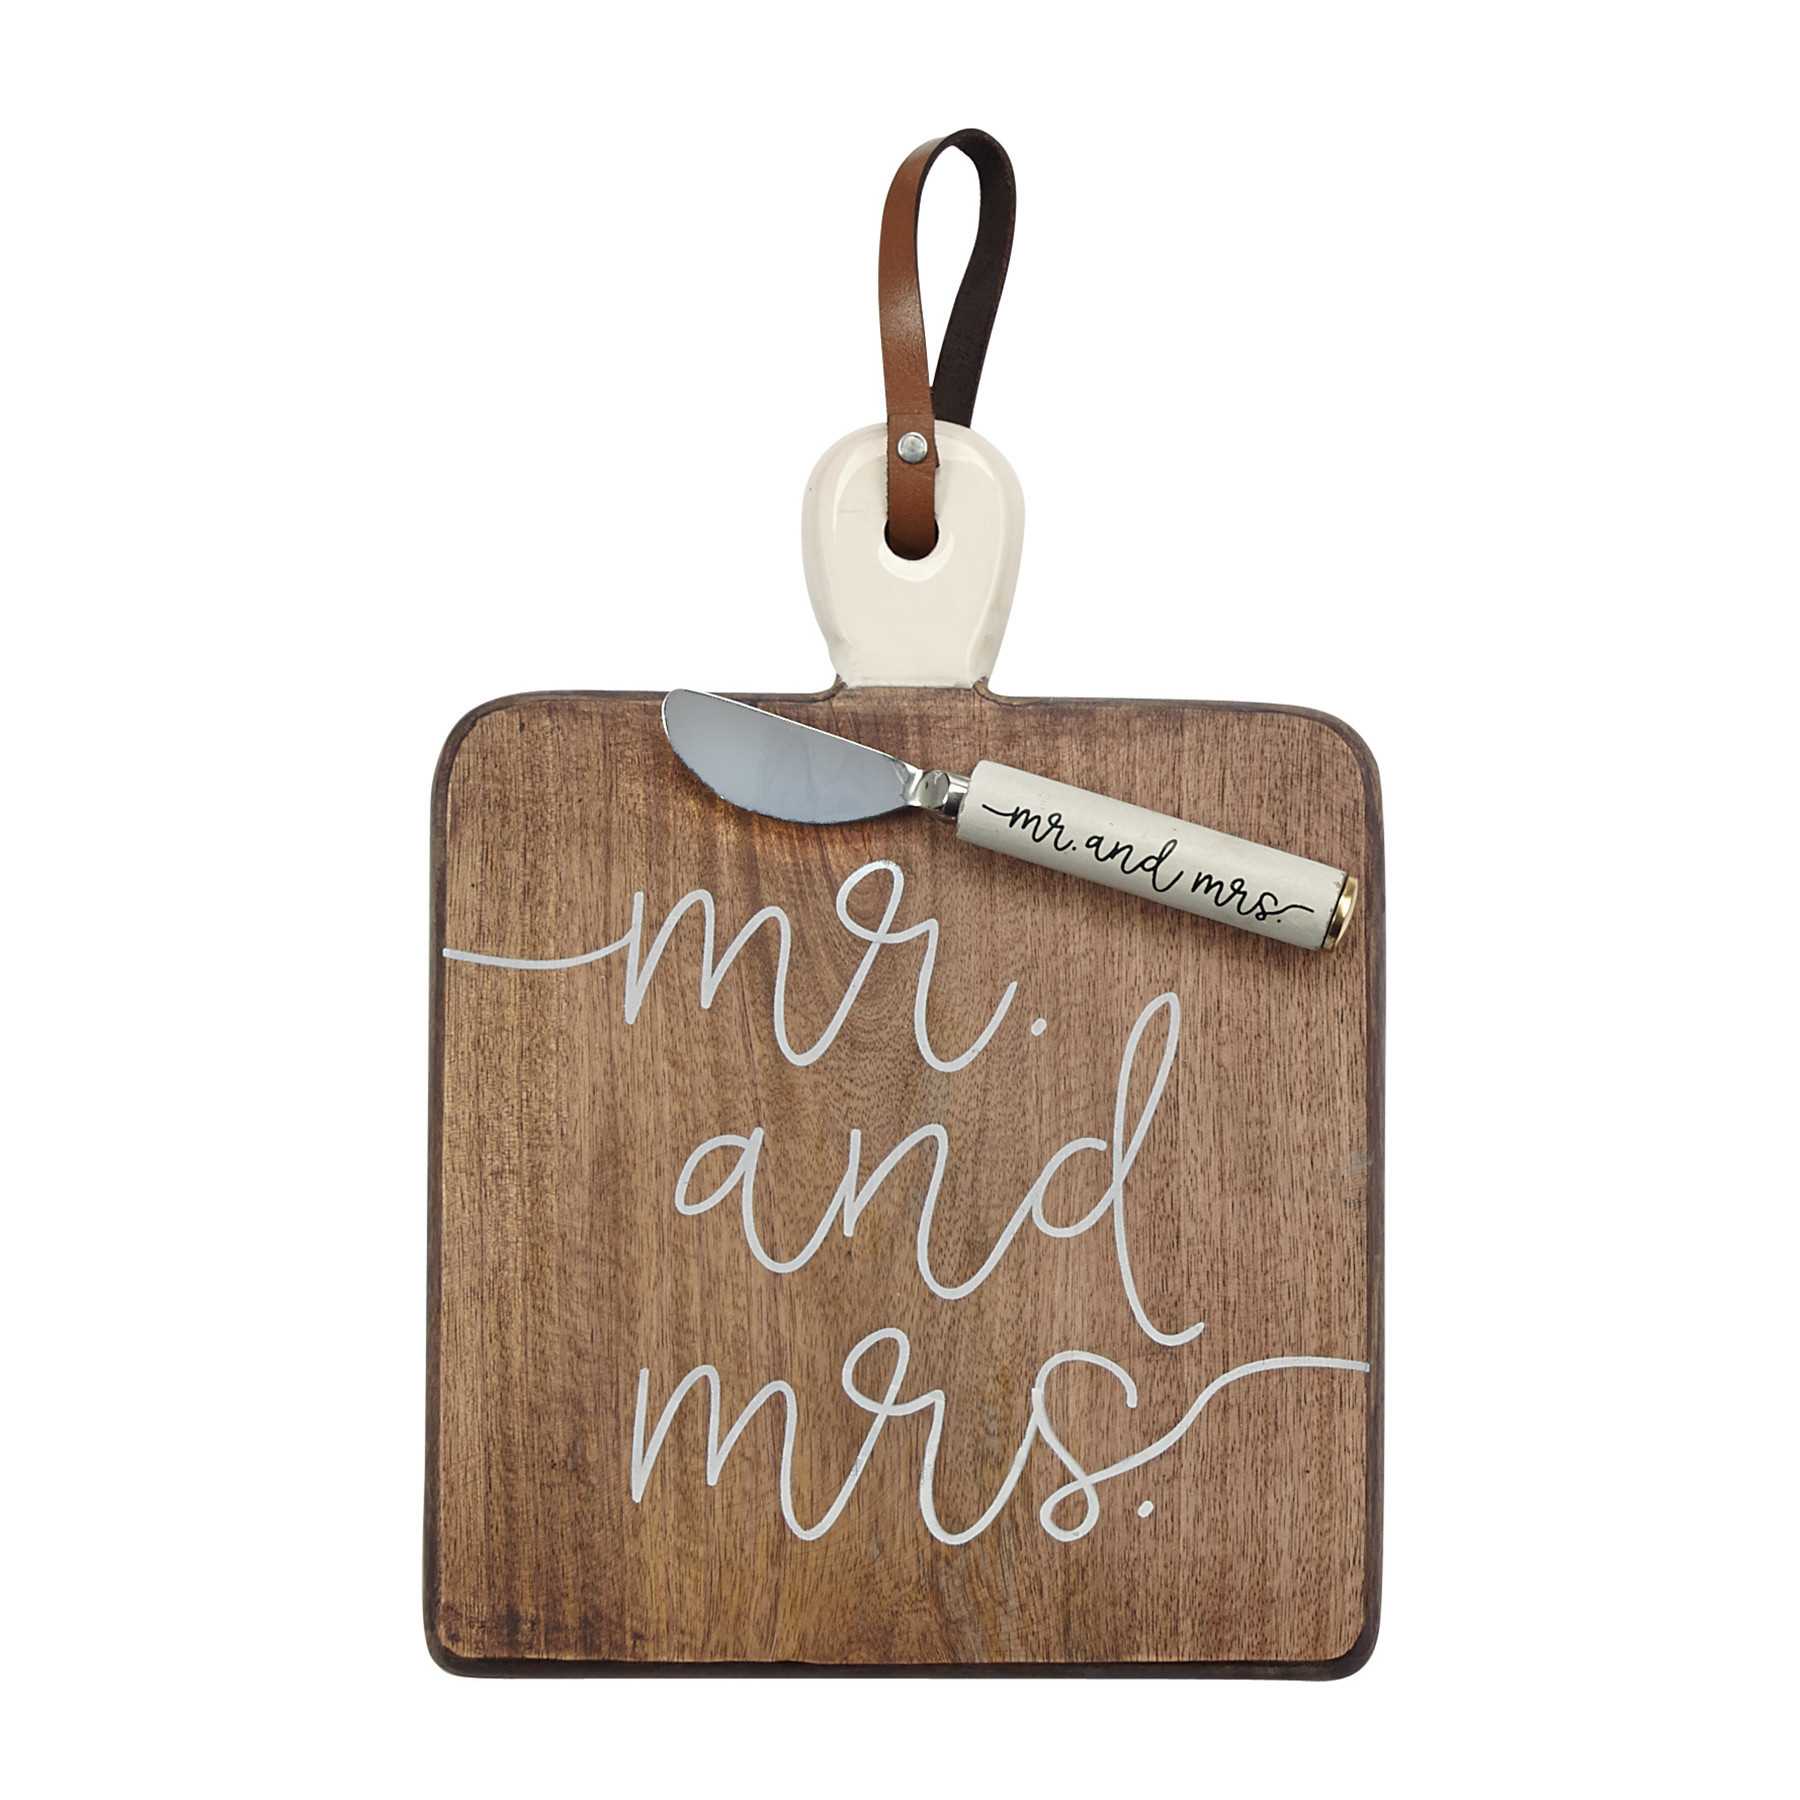 Mudpie MR AND MRS BOARD SET